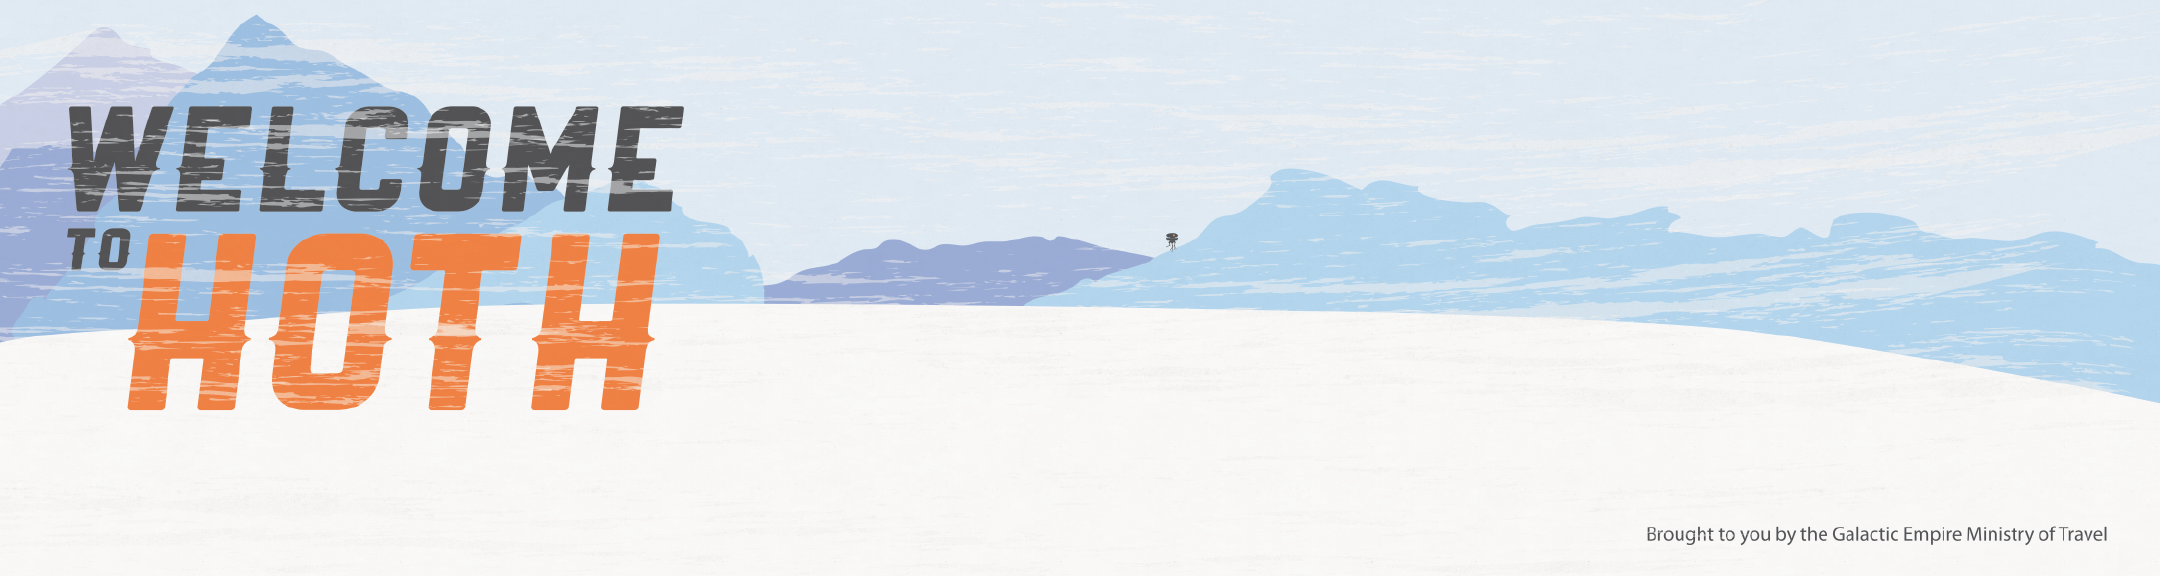 hoth-web-01.png